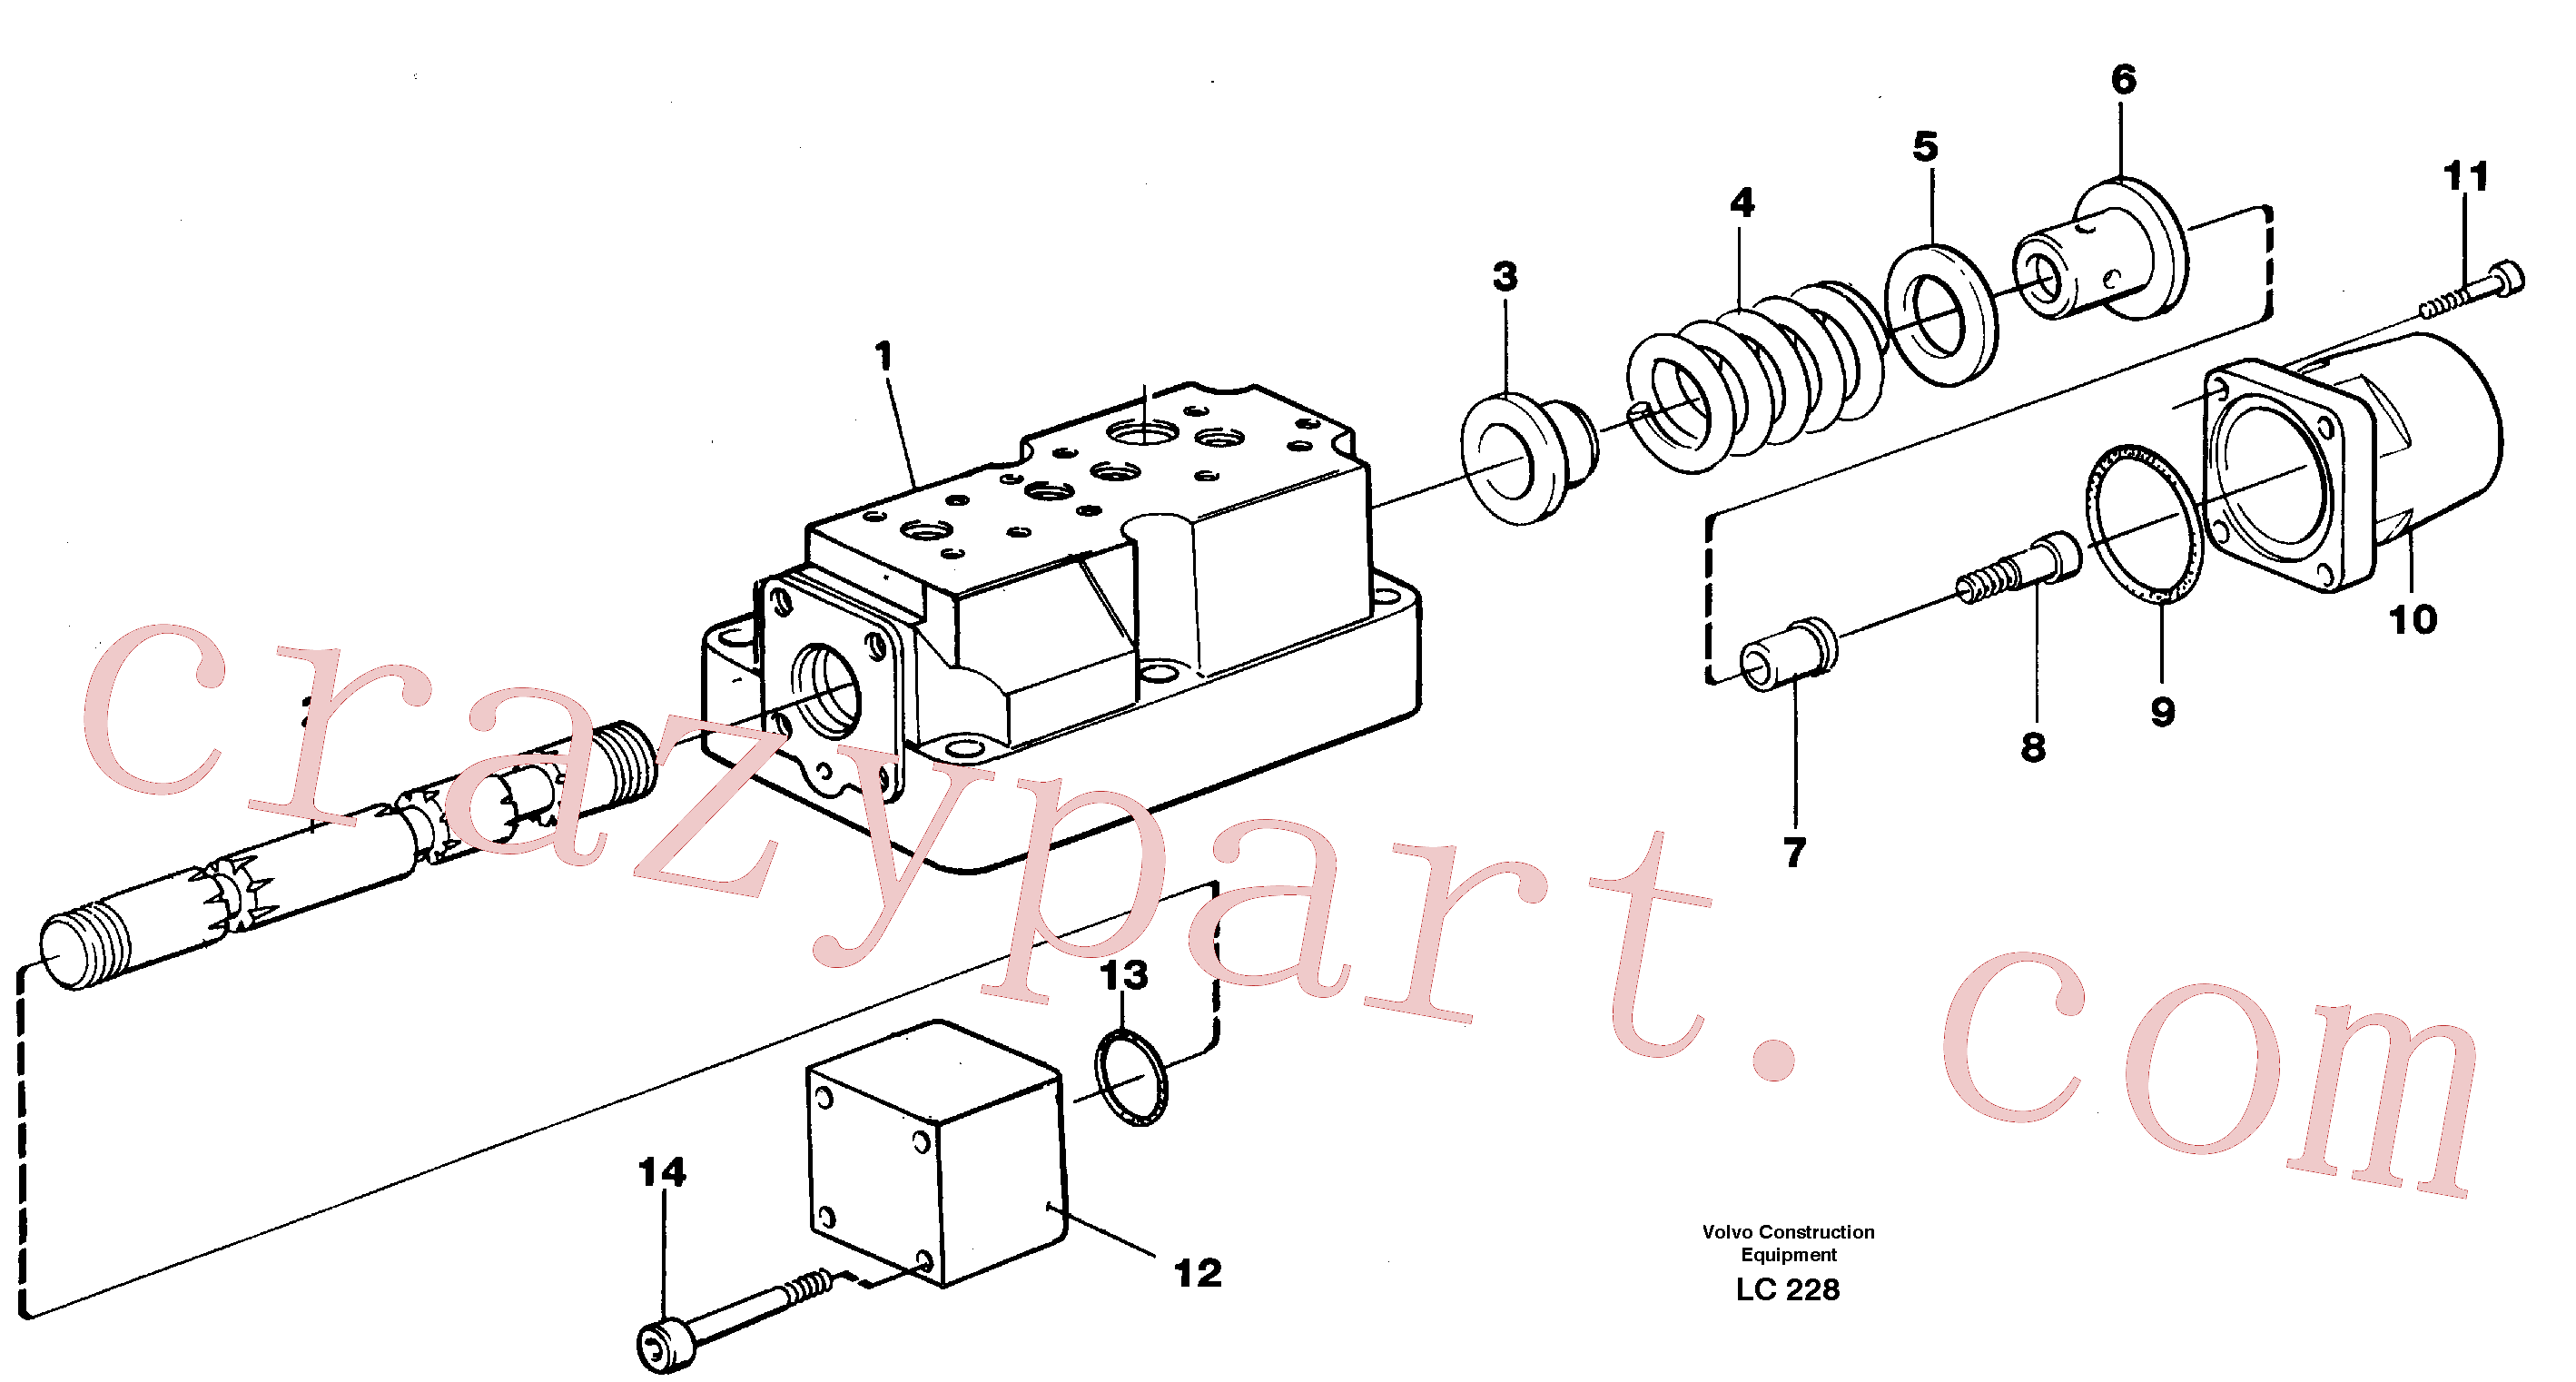 VOE977016 for Volvo Four-way valve, rotating equipment(LC228 assembly)